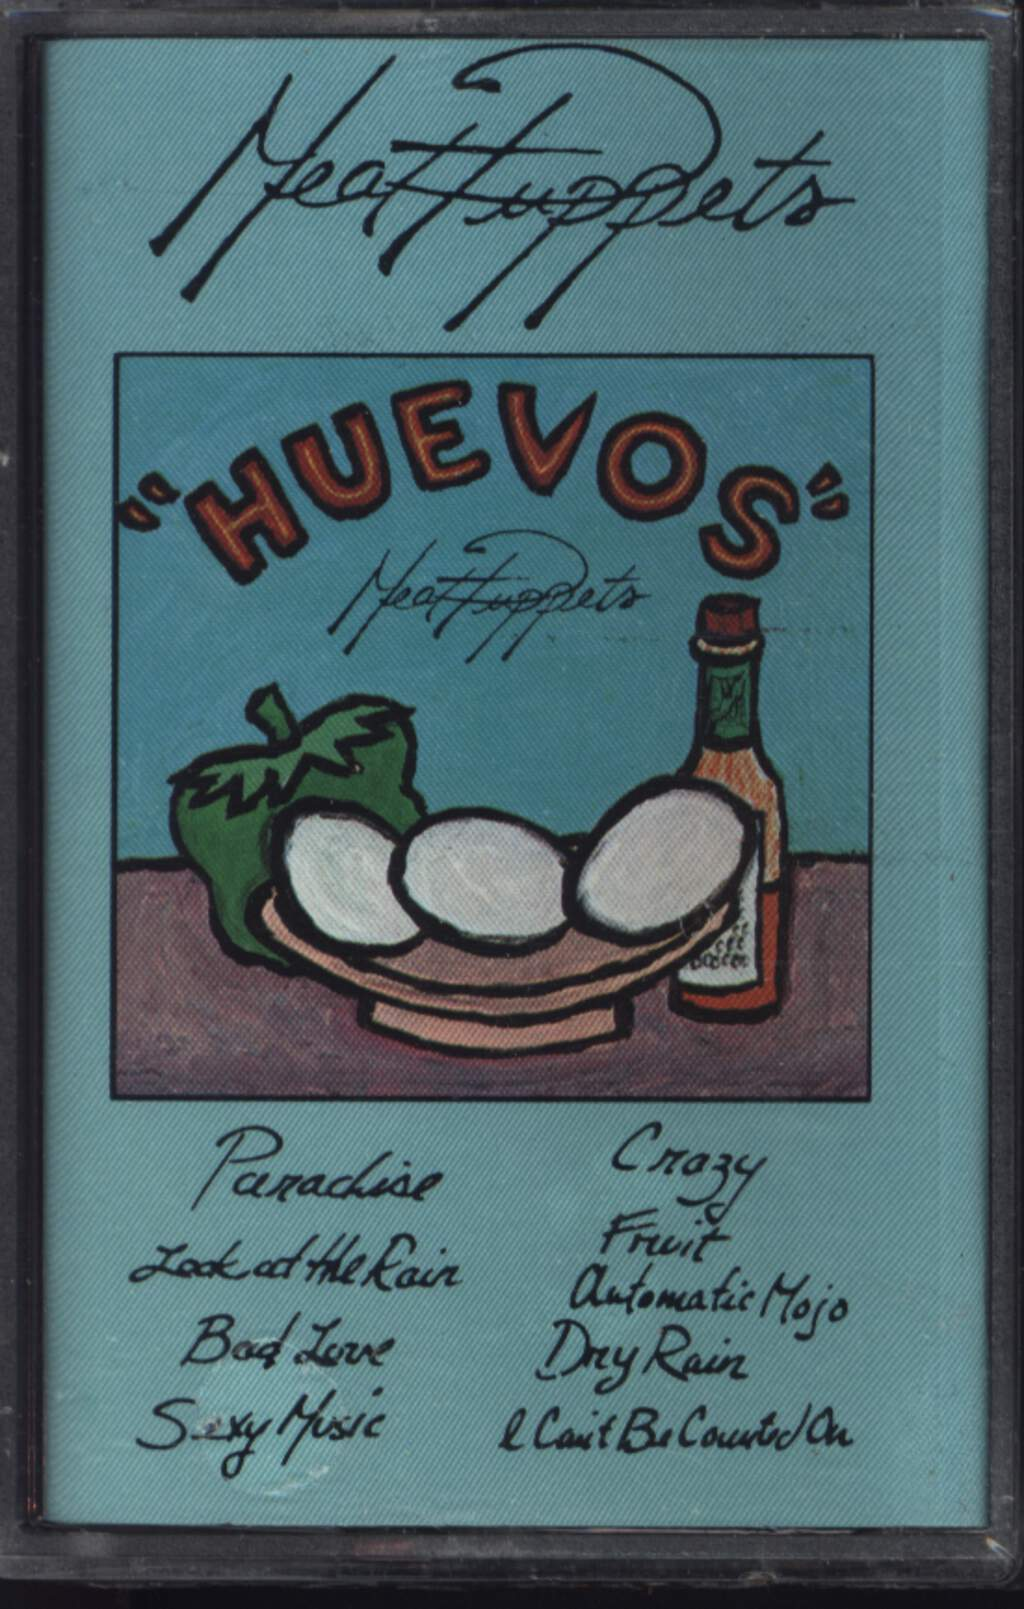 Meat Puppets: Huevos, Compact Cassette